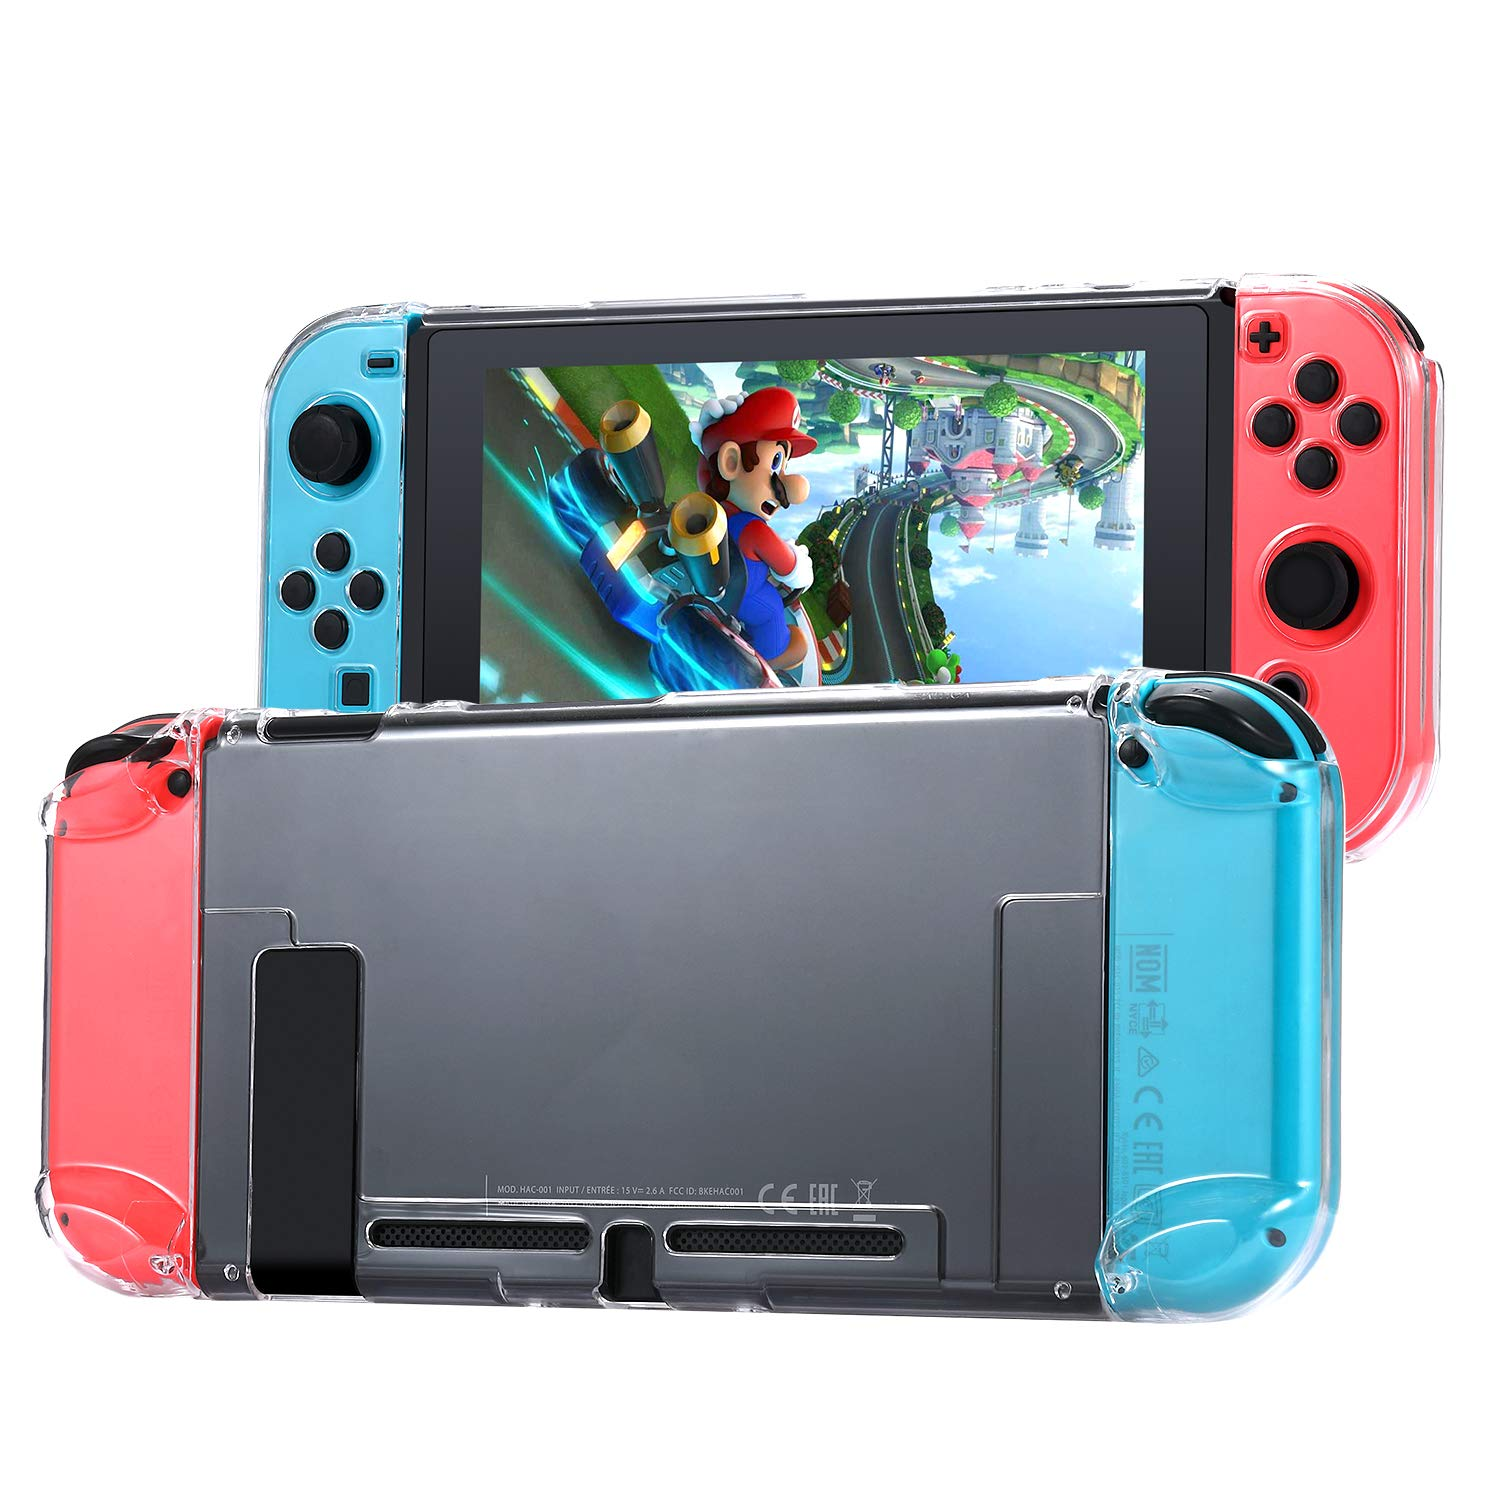 Tasikar Funda Compatible con Nintendo Switch Separables Funda Cristal Transparente Compatible con Nintendo Switch Console y Joy-con Controllers (Transparente): Amazon.es: Electrónica